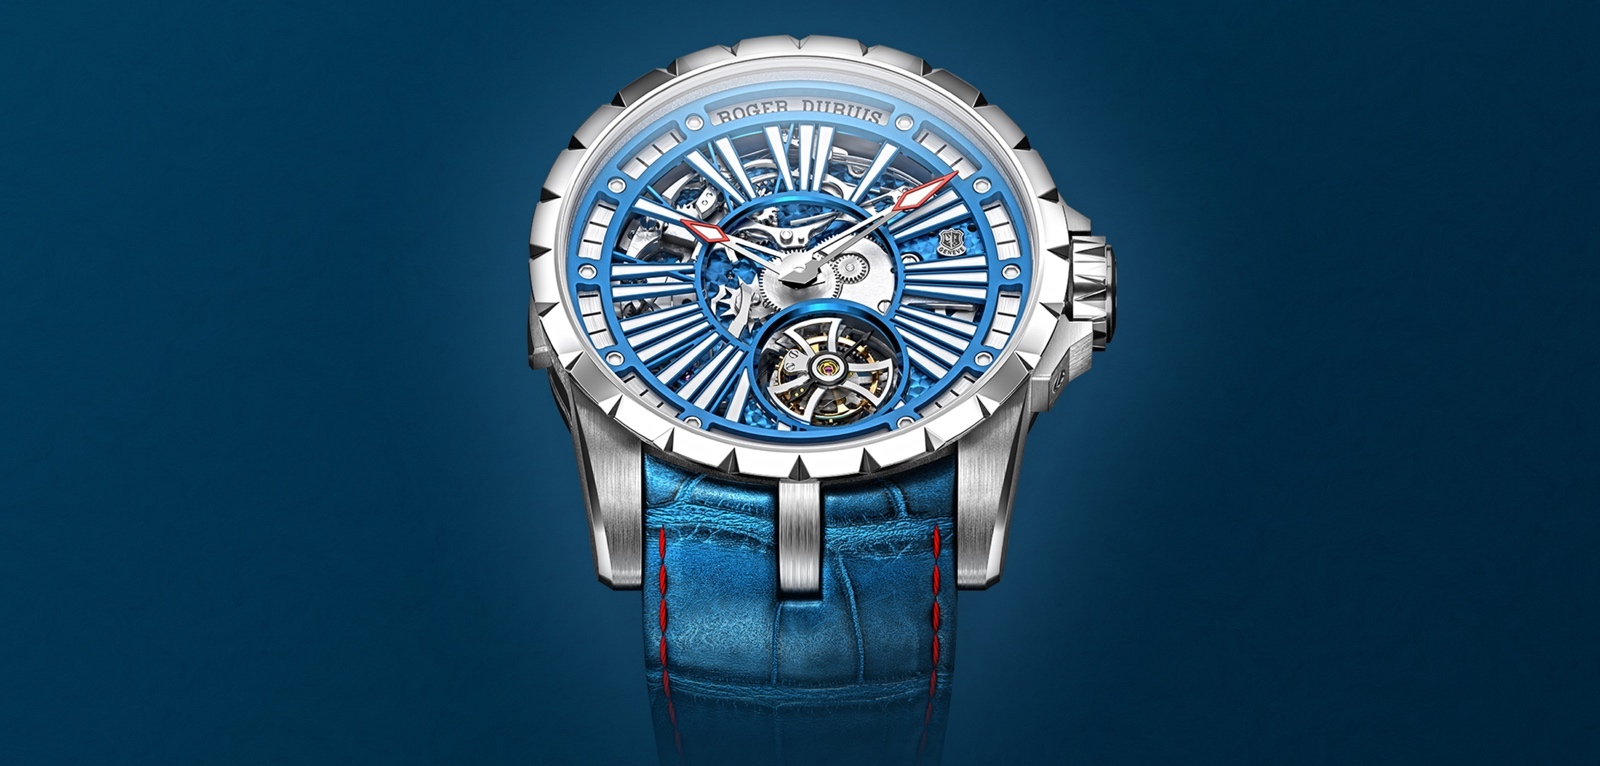 Roger Dubuis Excalibur Millesime Cover